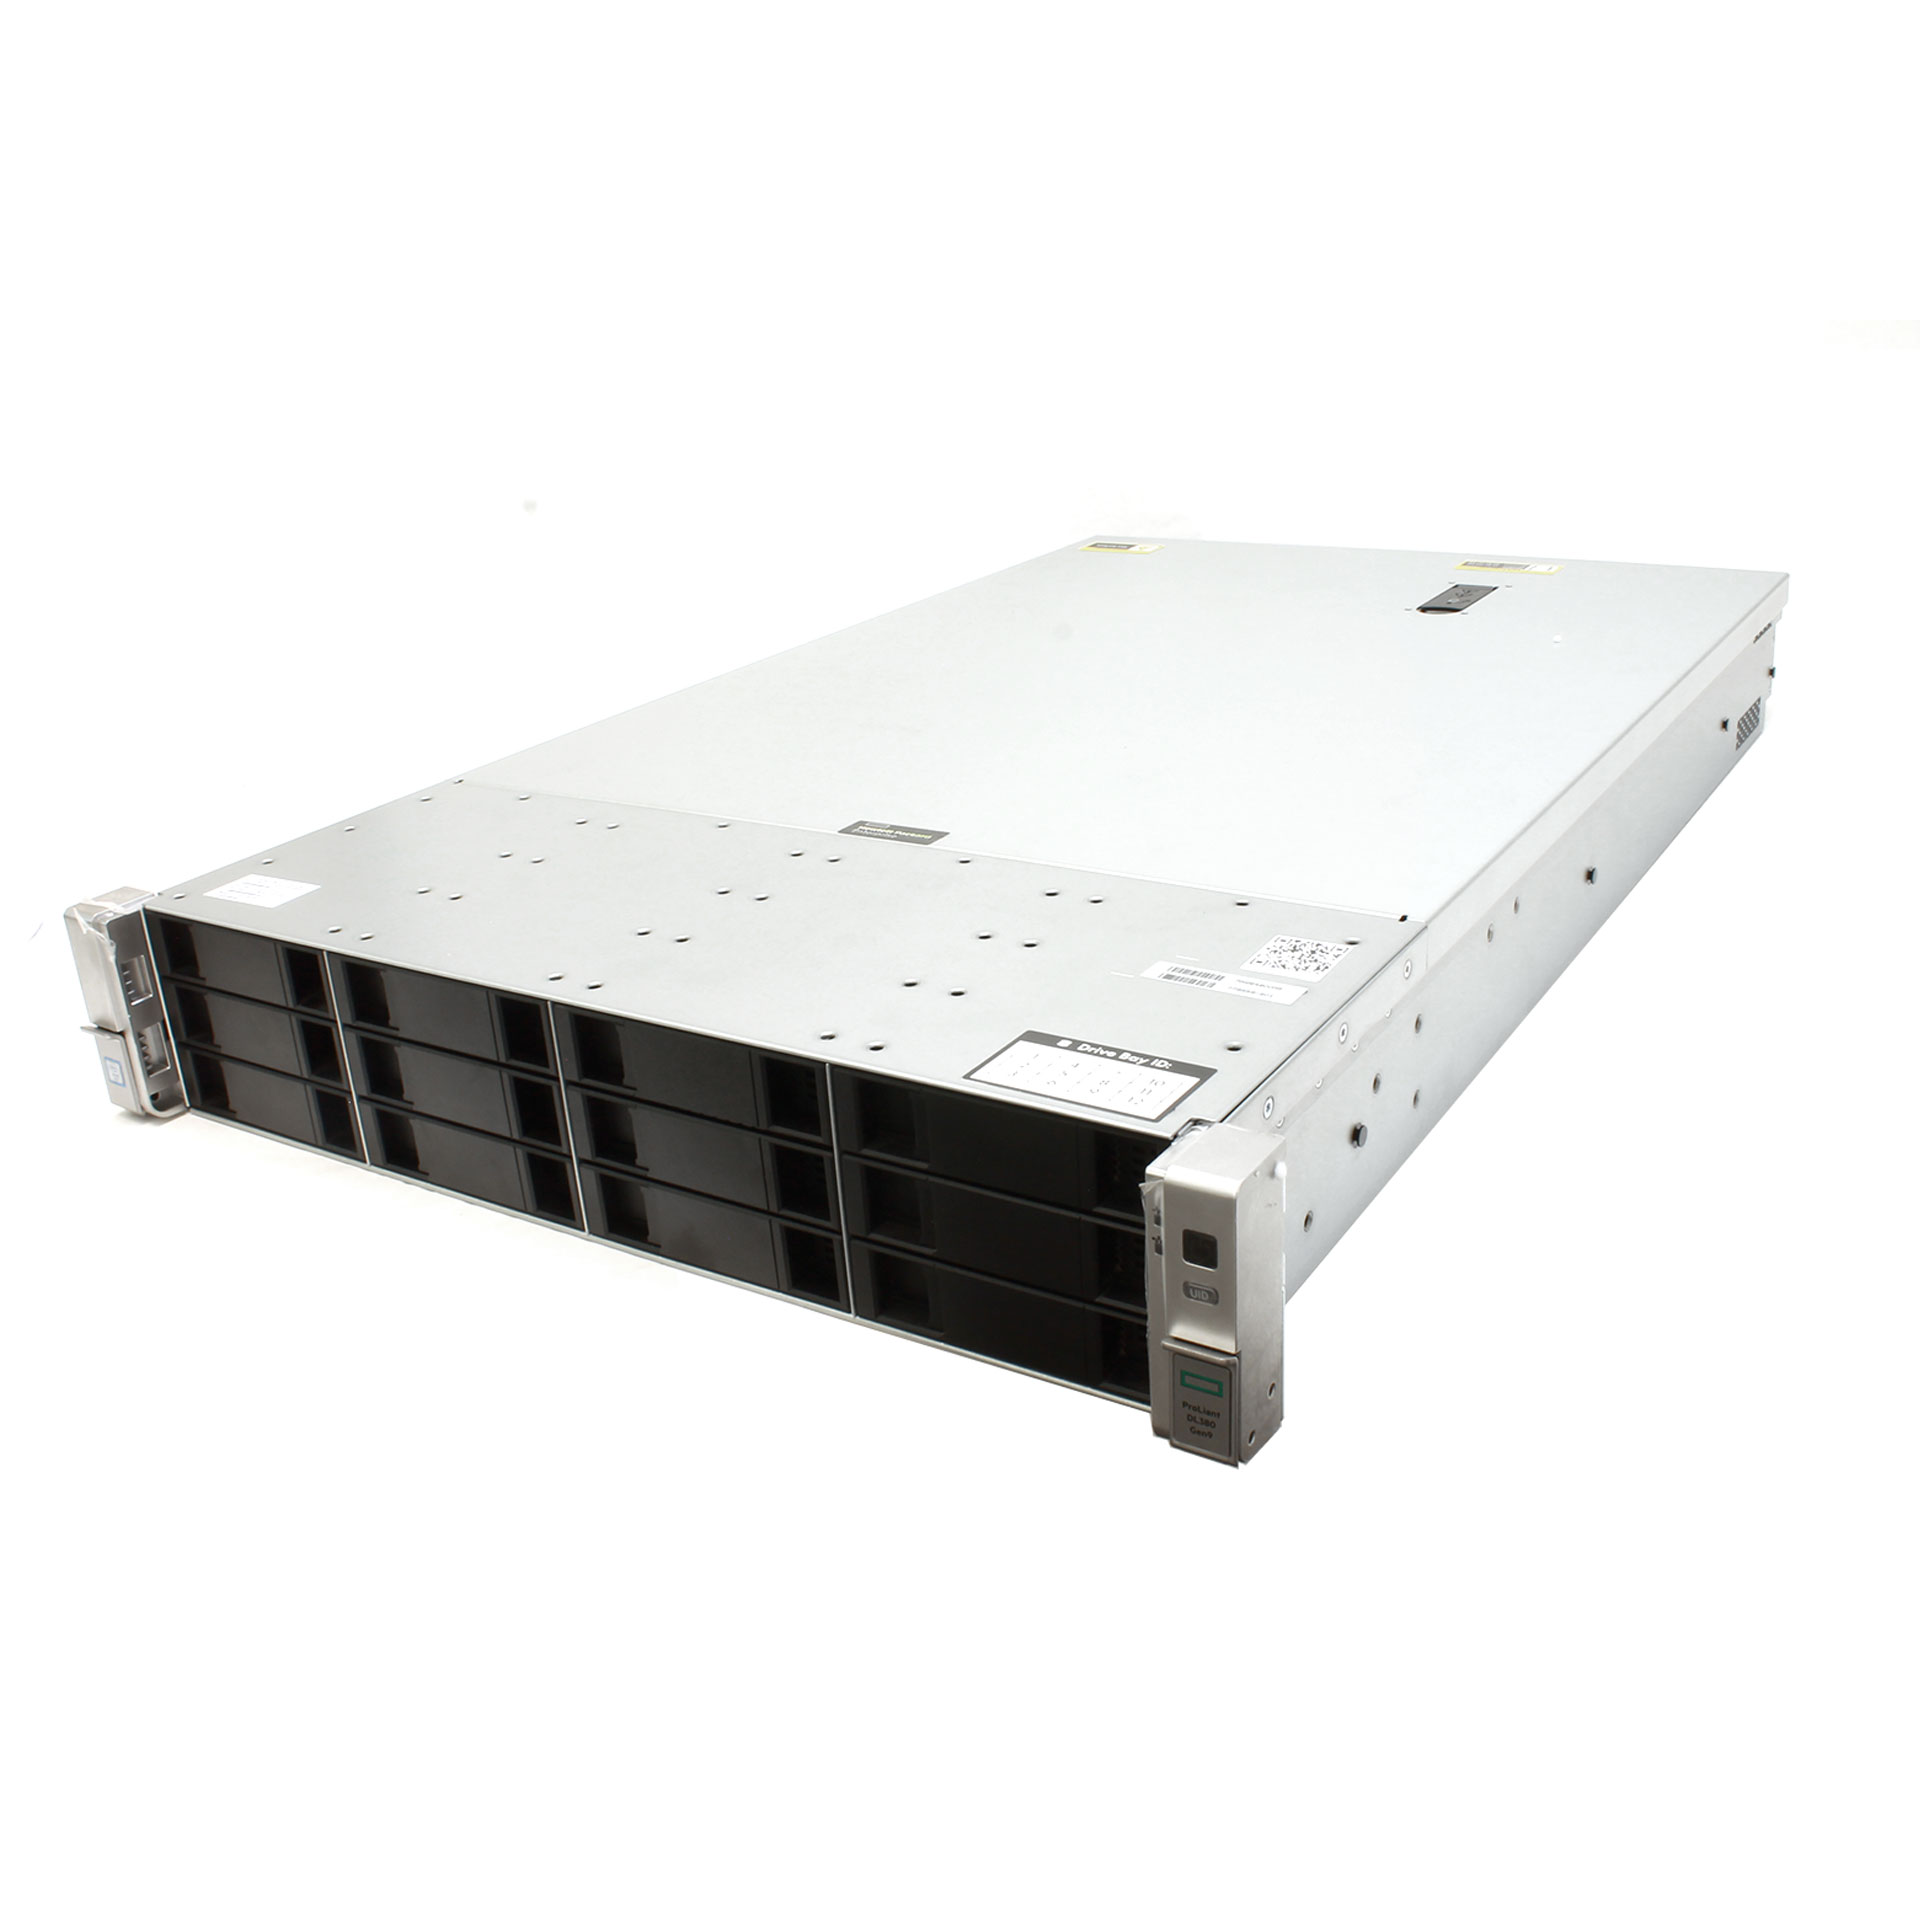 HPE SB ProLiant DL380 Gen9 Xeon E5-2620V3 16 GB 779559-S01